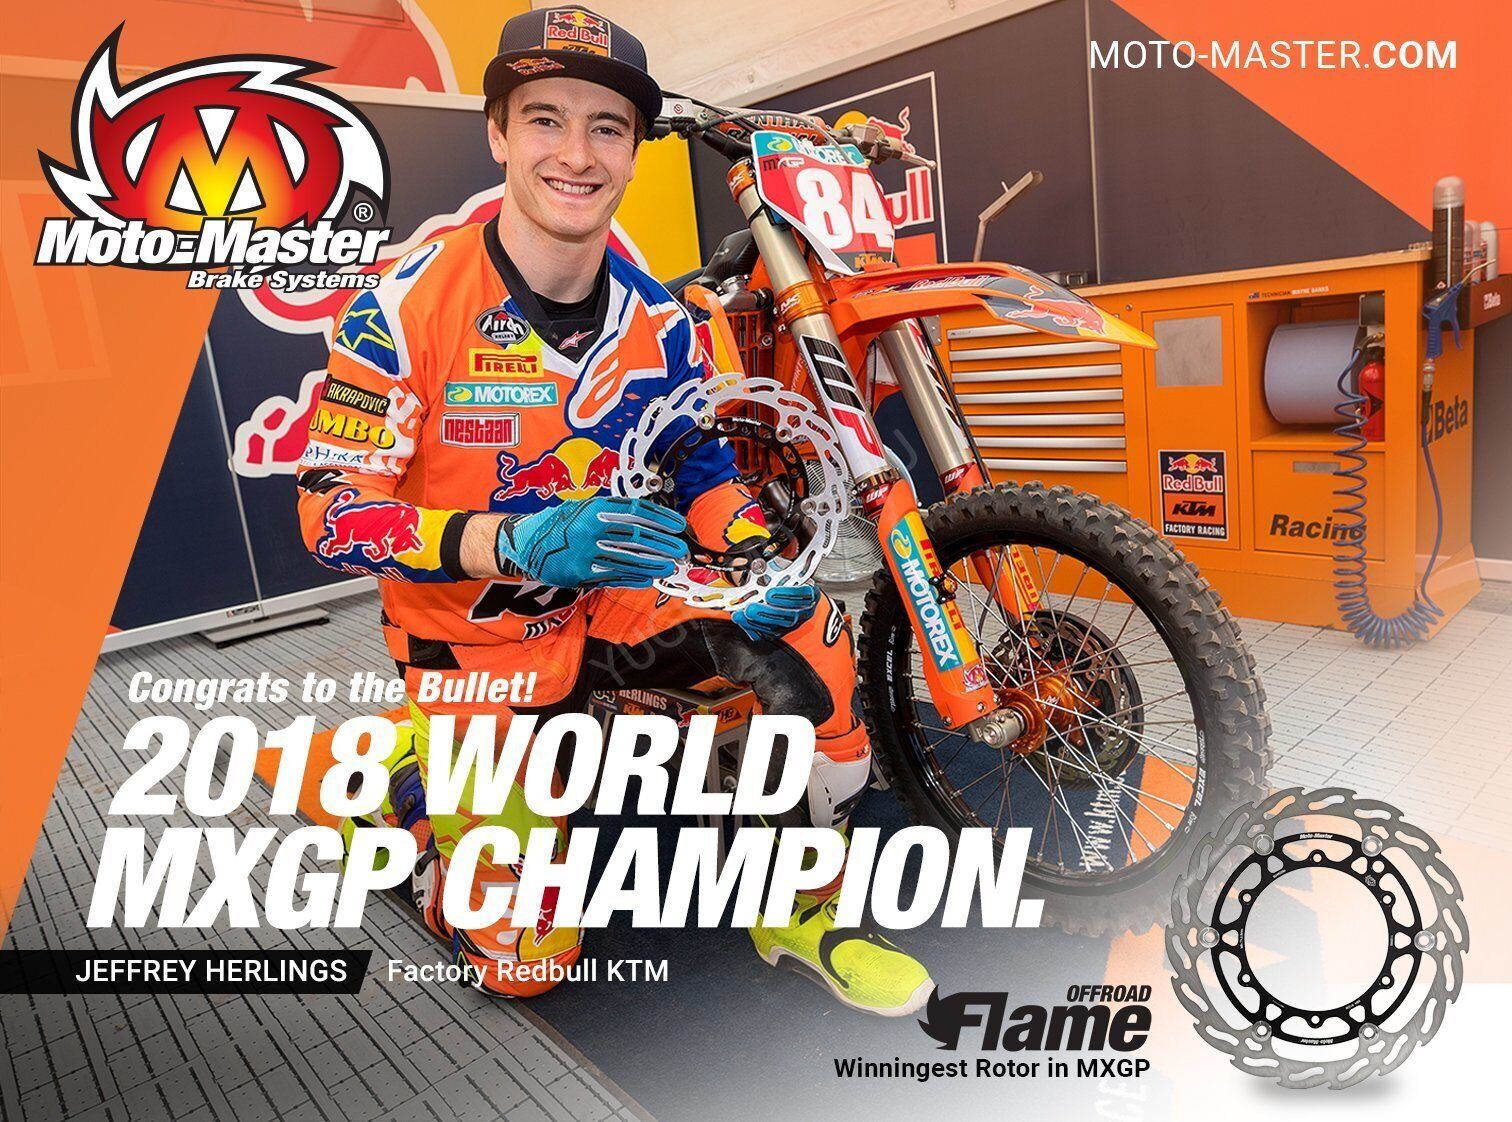 moto-master-gazet-herlings